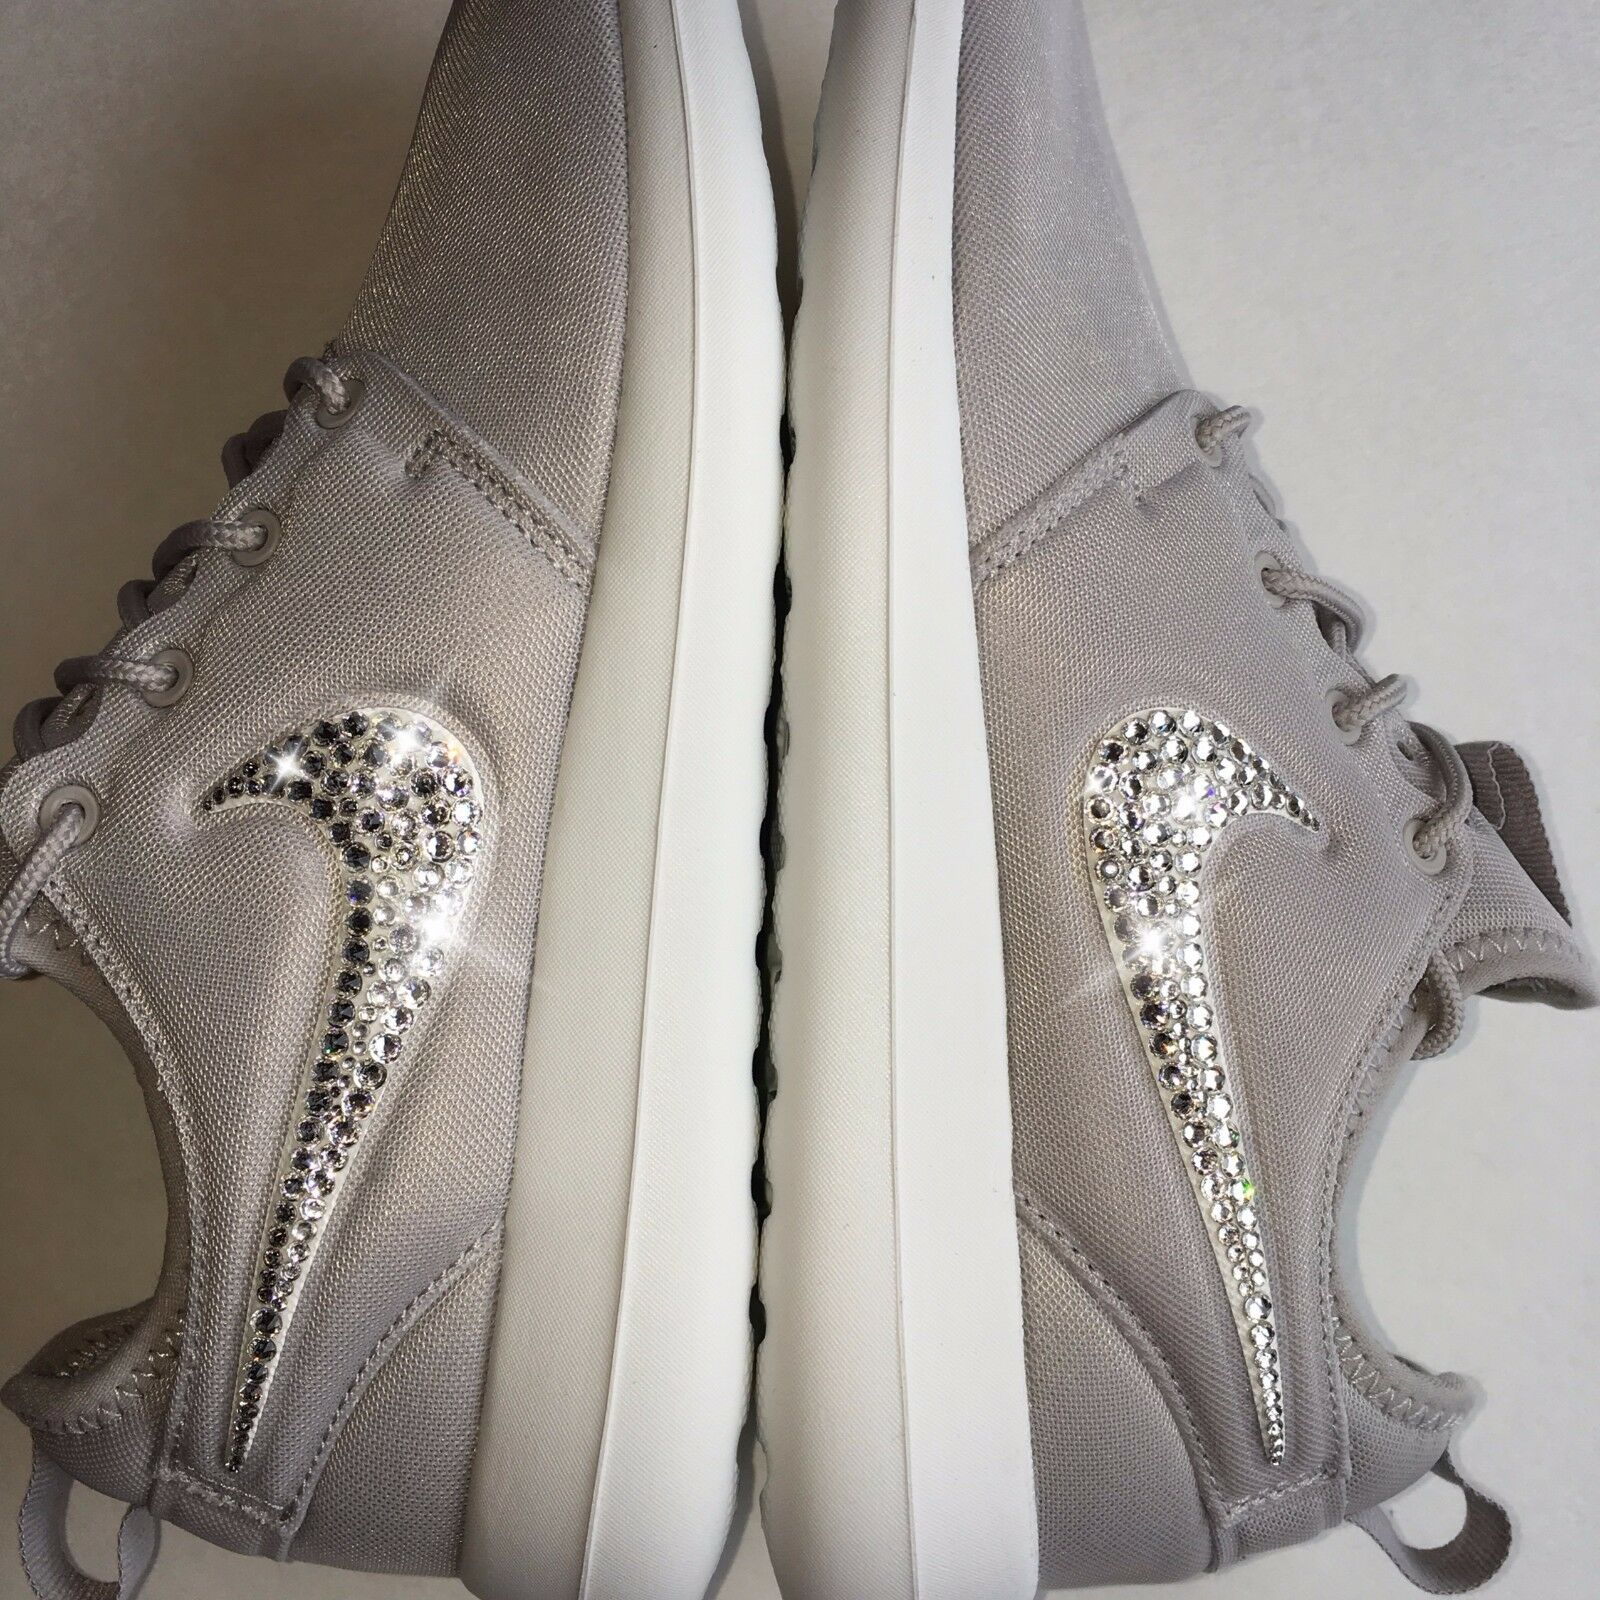 Bling Nike Roshe Two shoes w  Swarovski Crystals  Grey & White Bedazzled Swoosh